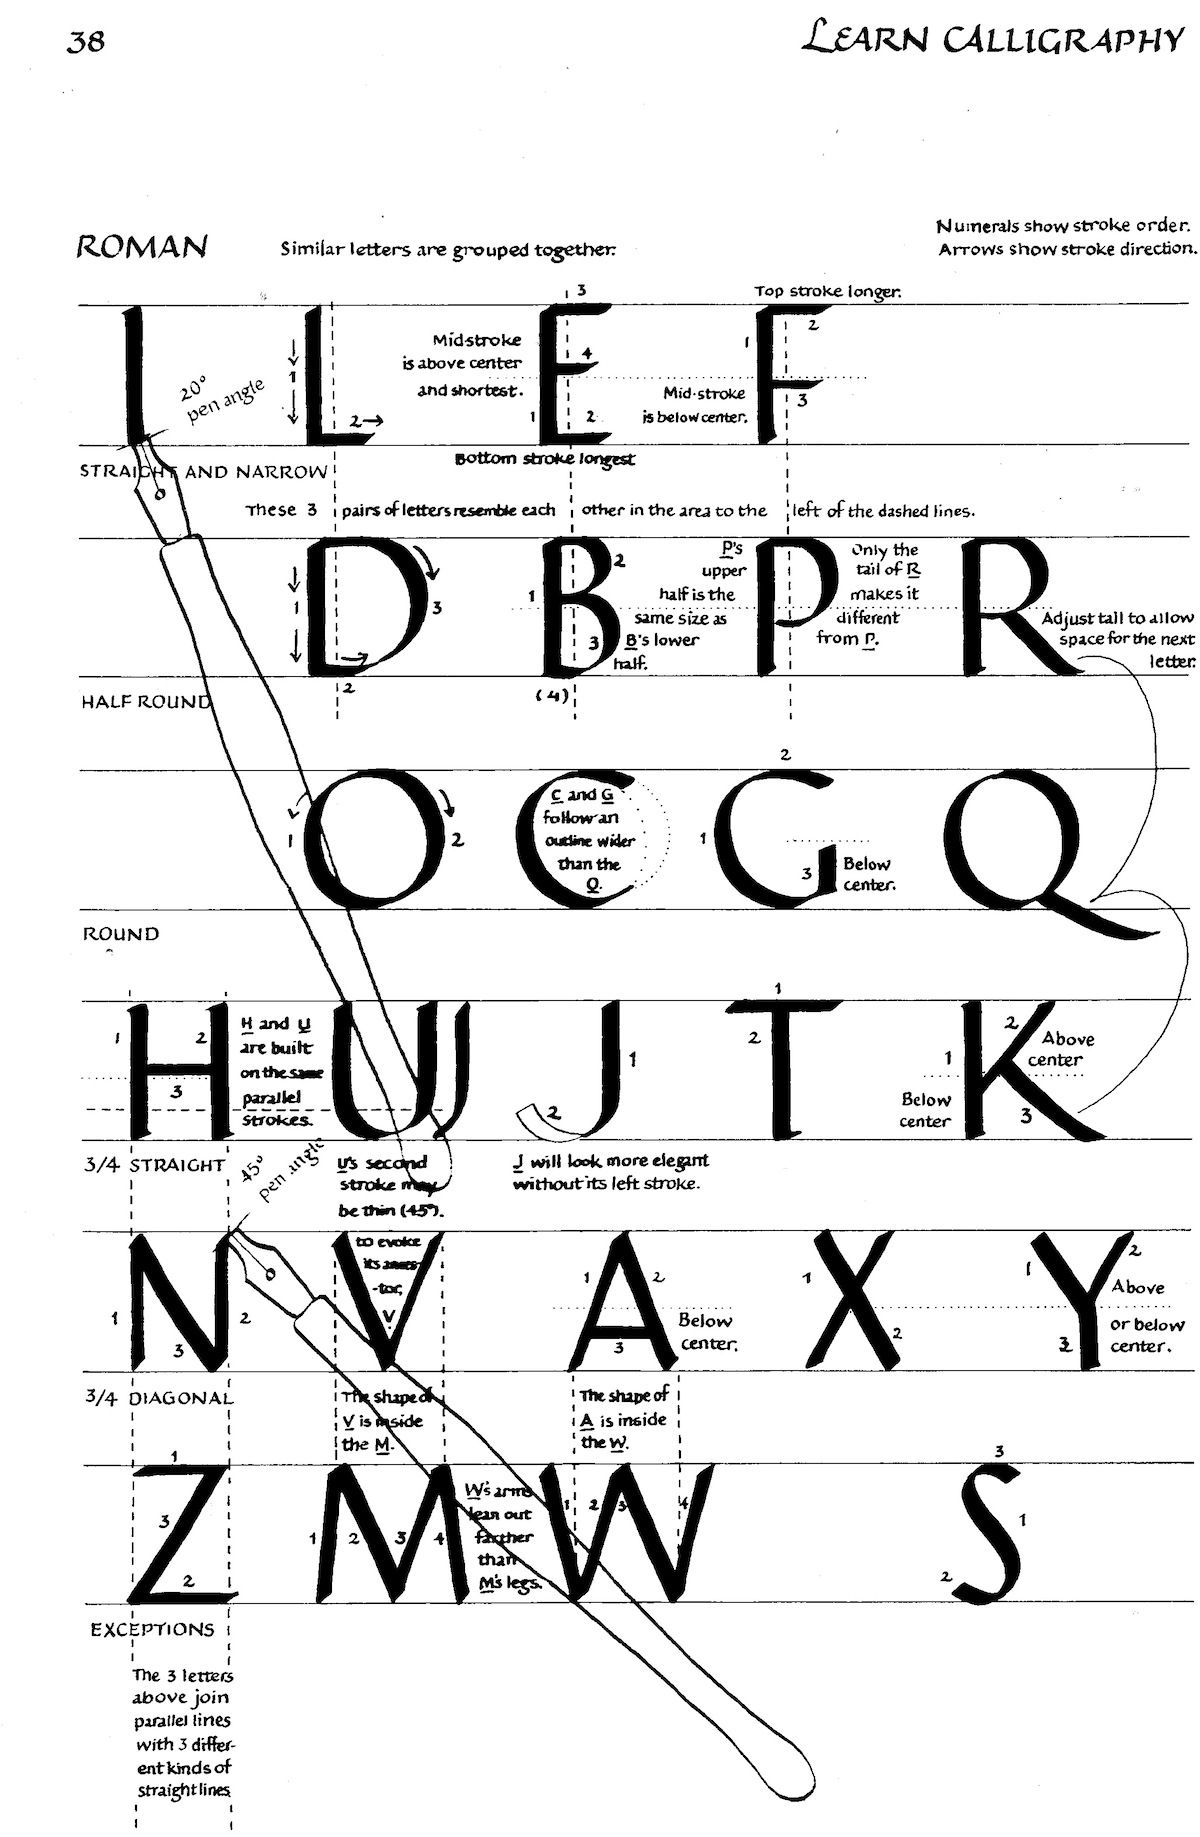 The Roman Alphabet Explained For You The Ultimate Map Of The Alphabet From Margaret Shepherd S